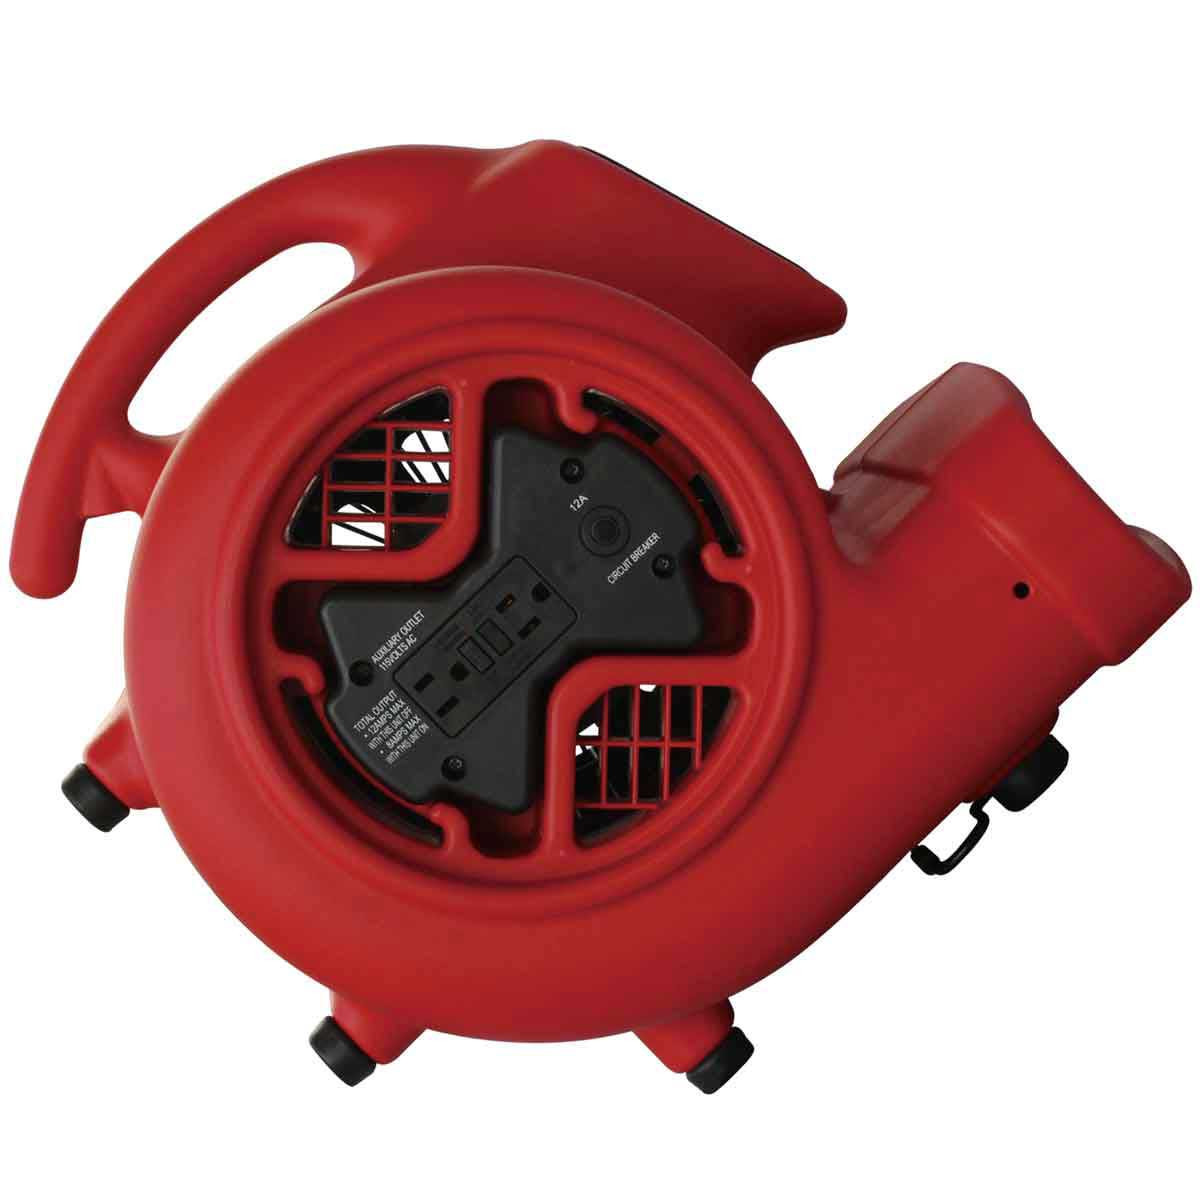 Hawk Air Mover ventilator outlet